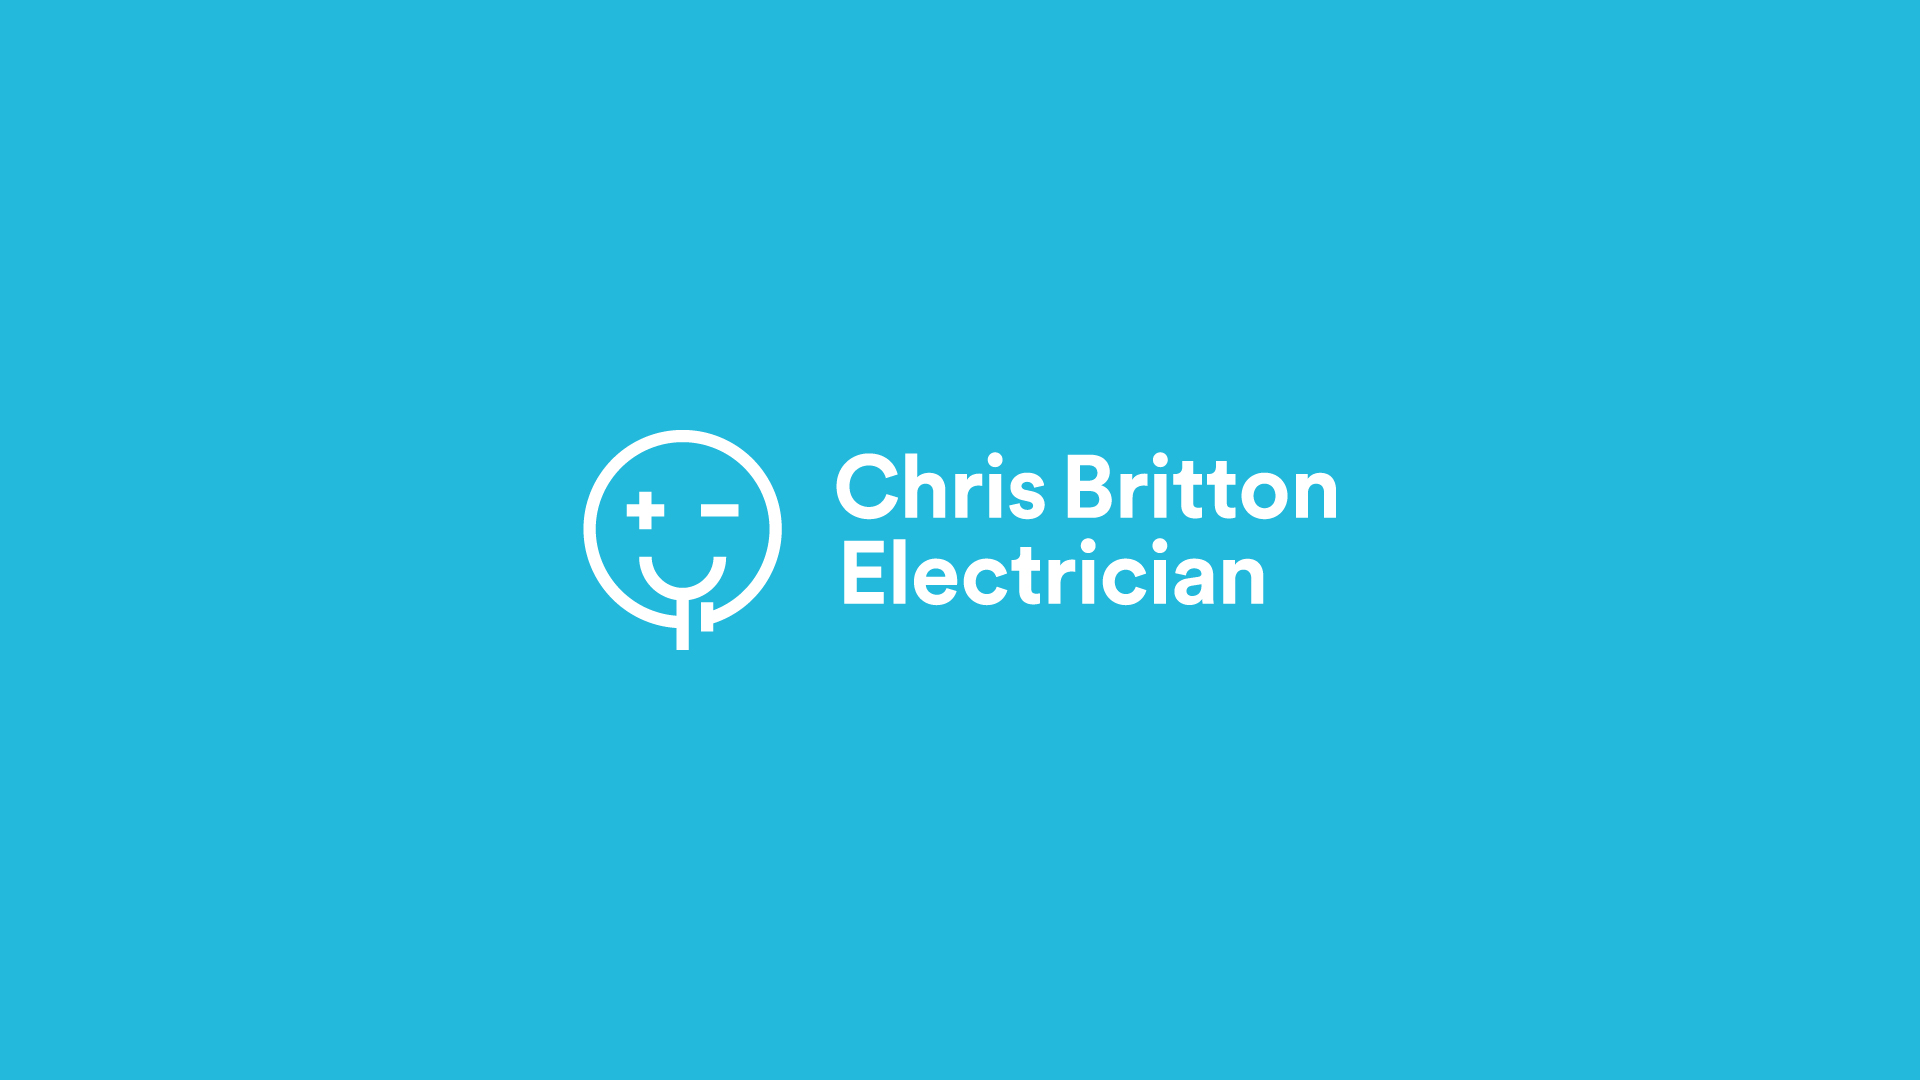 Chris Britton Electrician Branding Concept